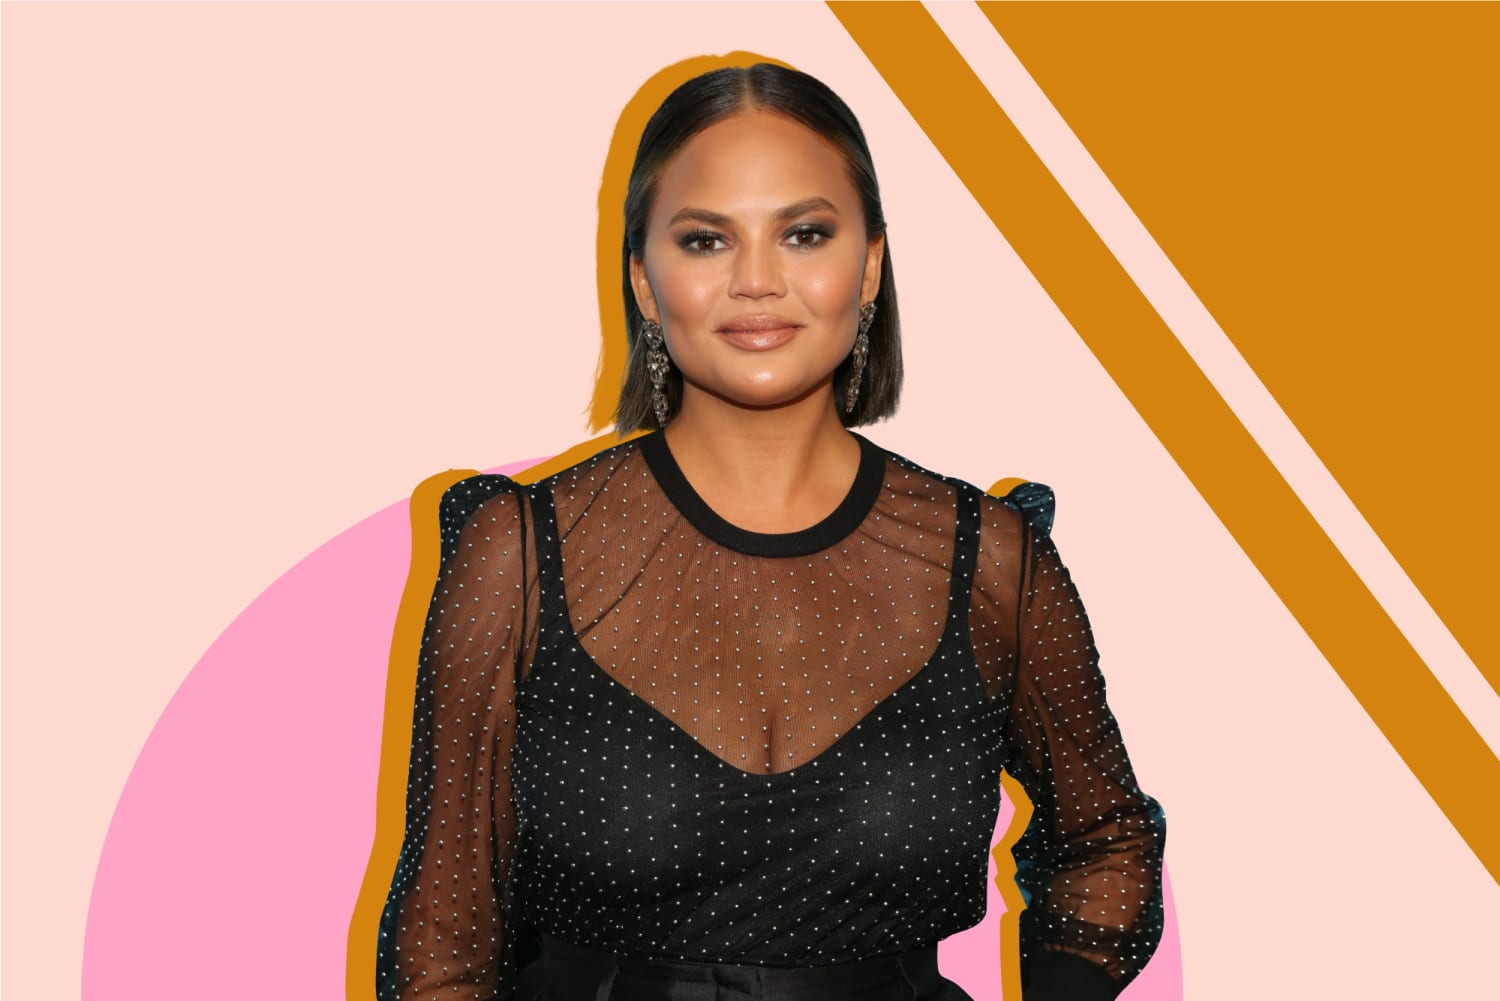 Chrissy Teigen Is Finally Getting a Cooking Show